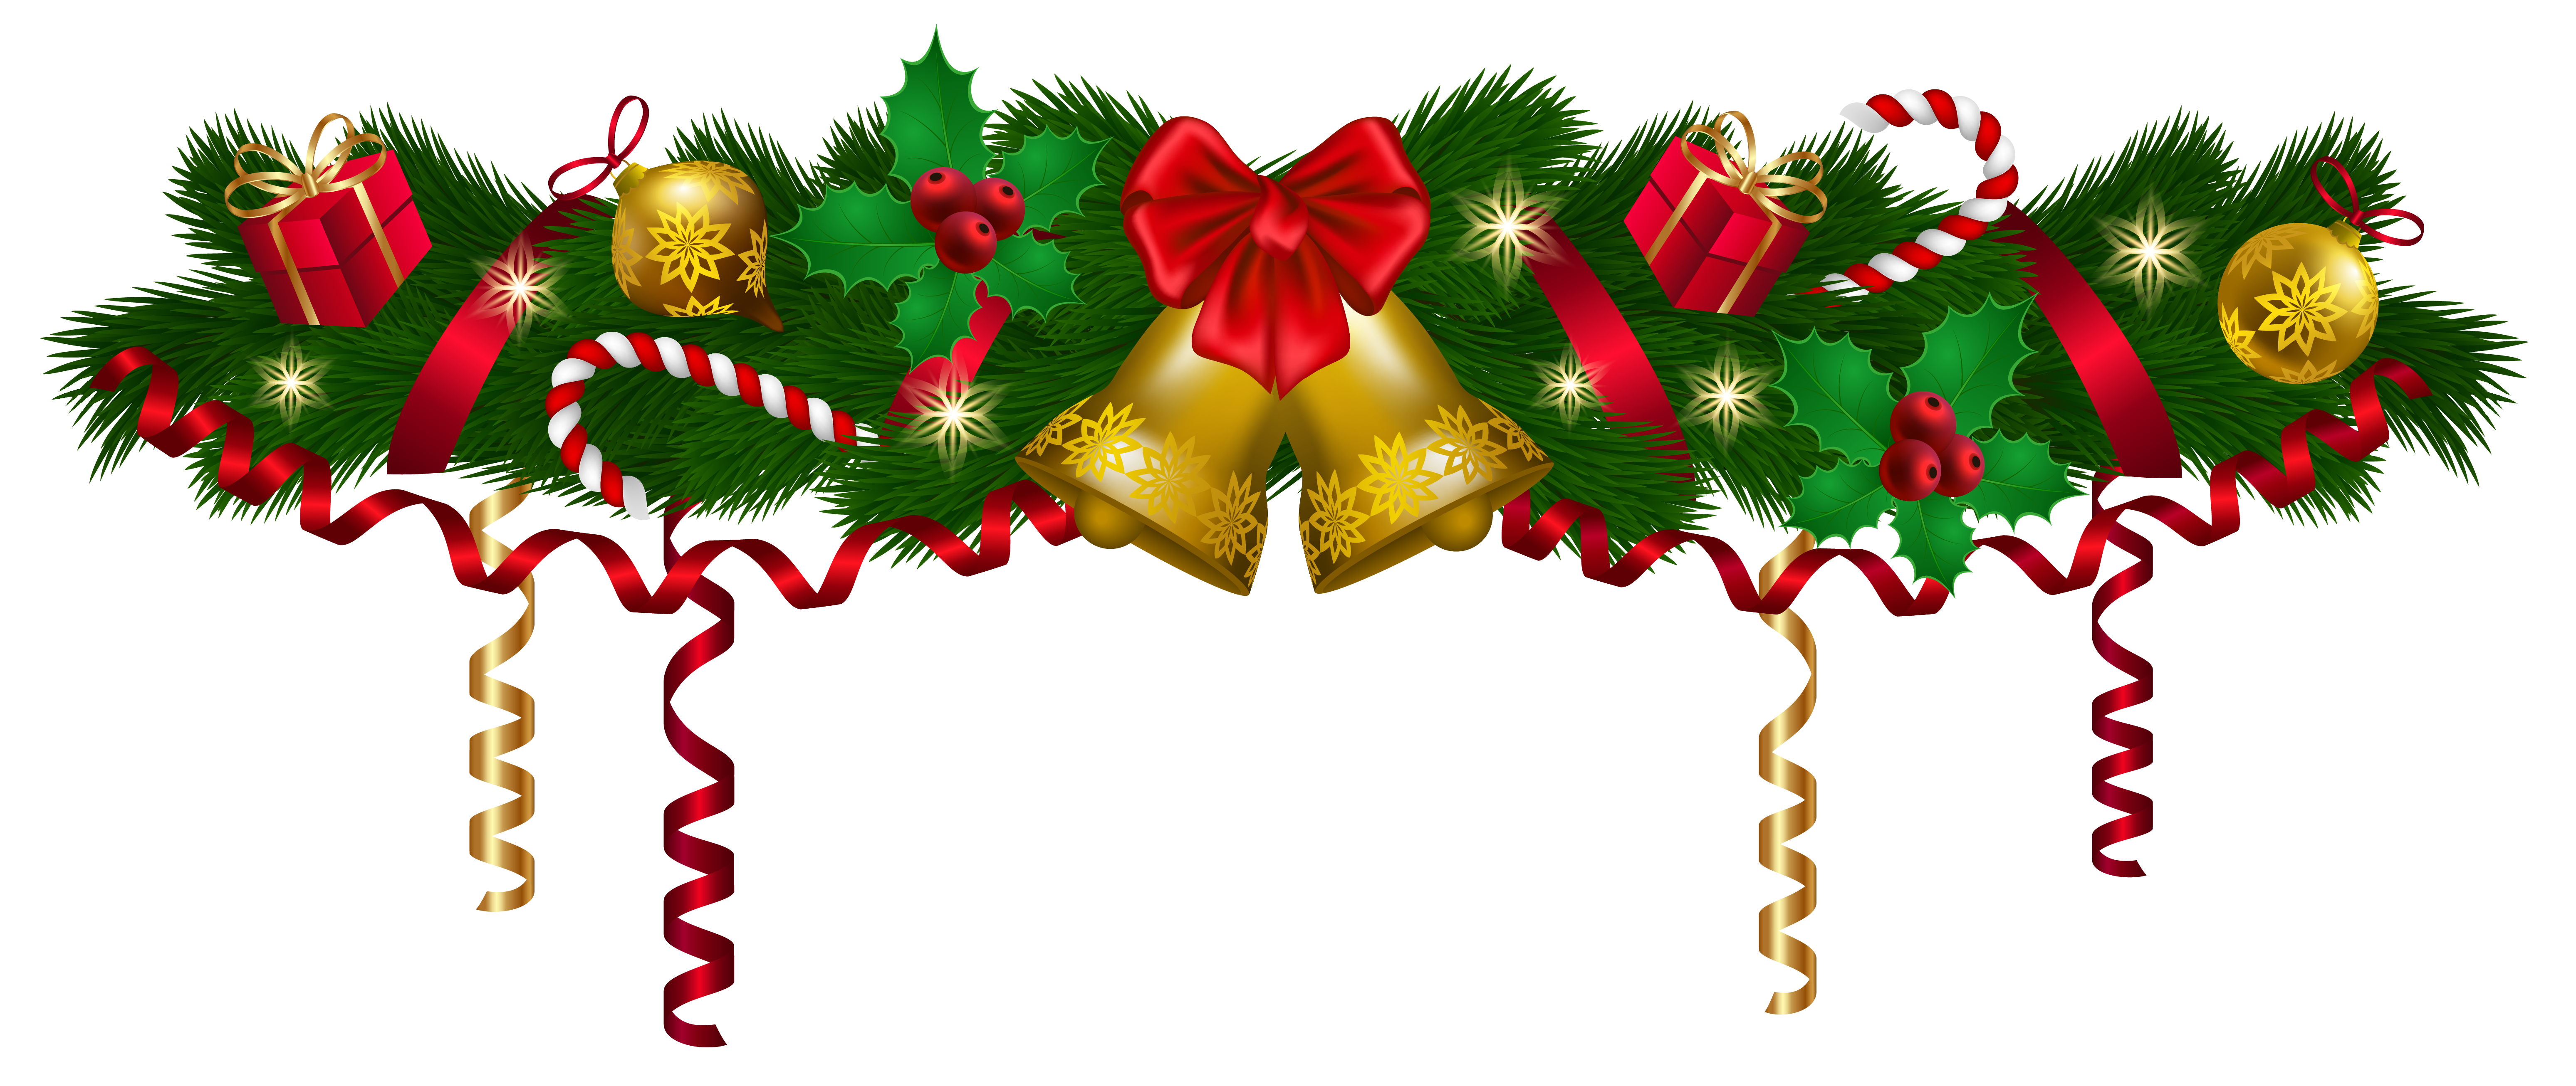 Garland png. Christmas eve clipart at